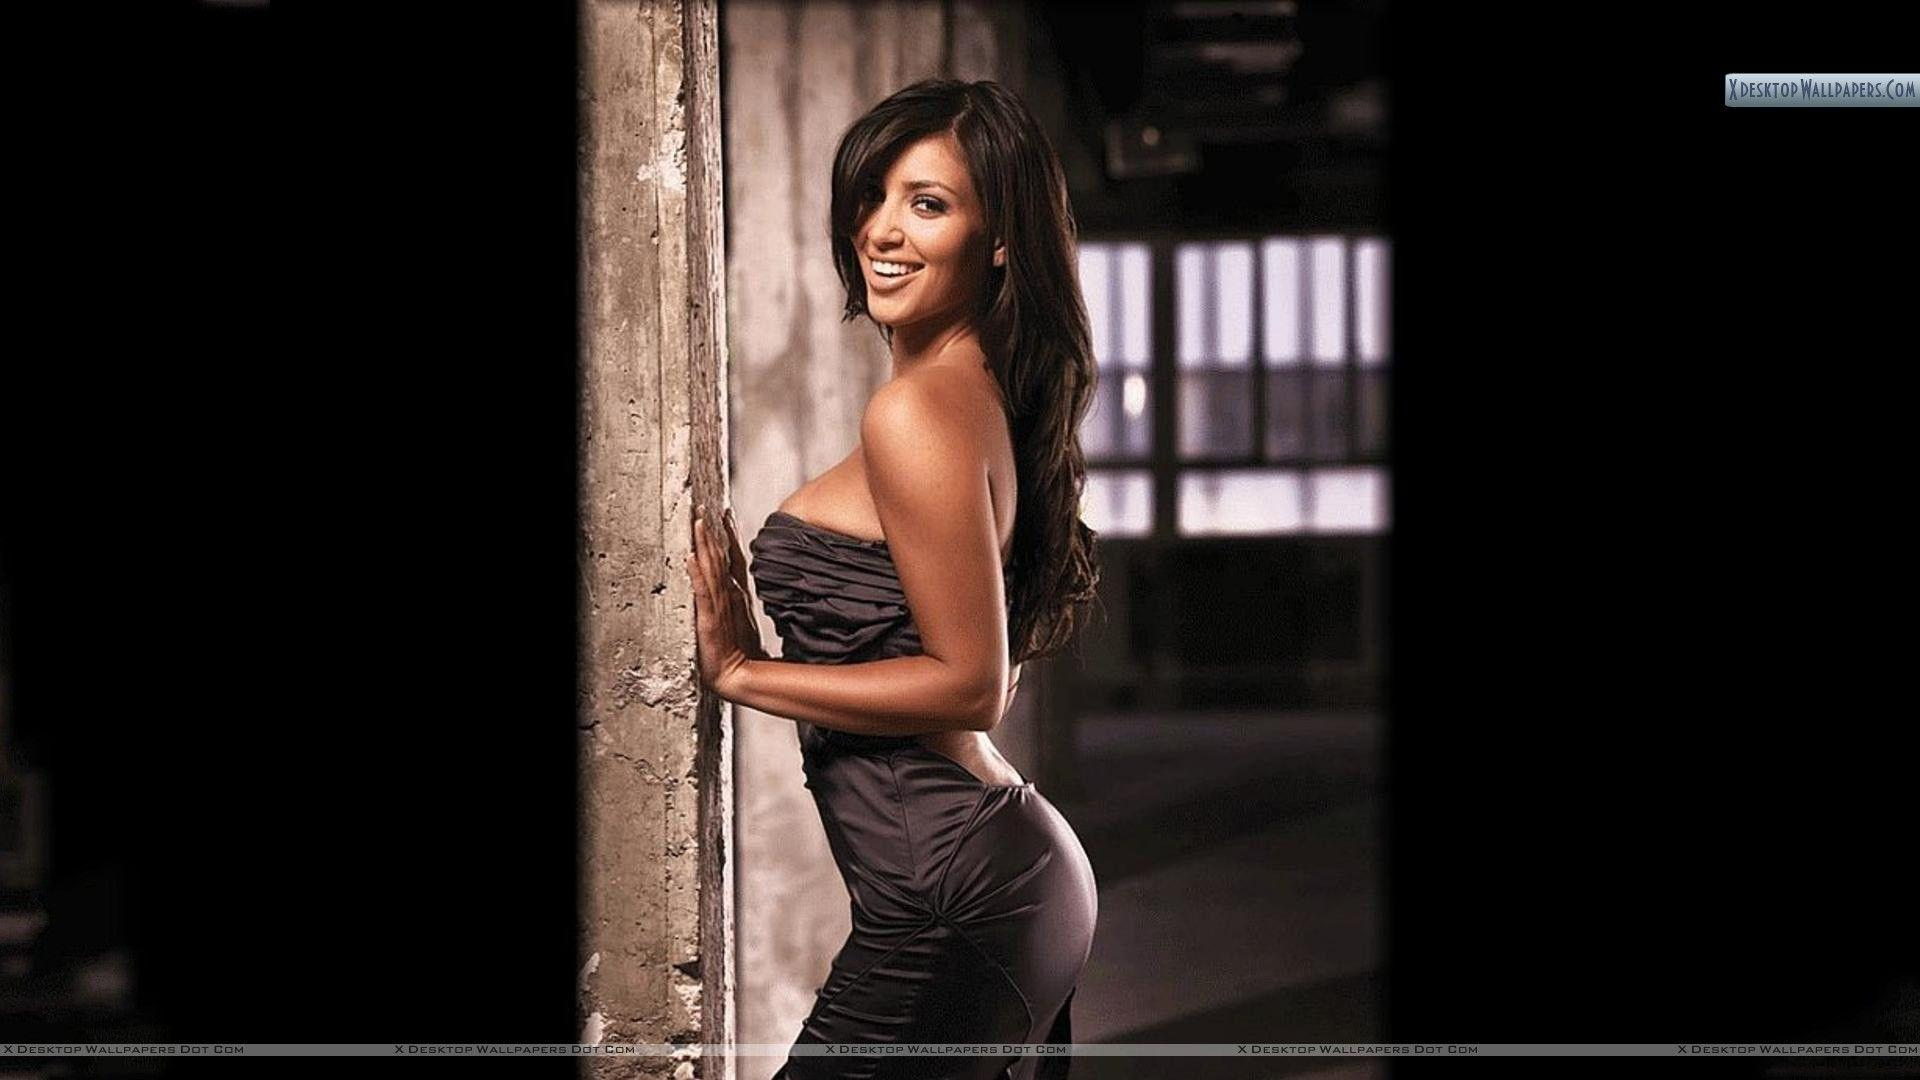 Kim Kardashian Pose In Black Dress Wallpapers